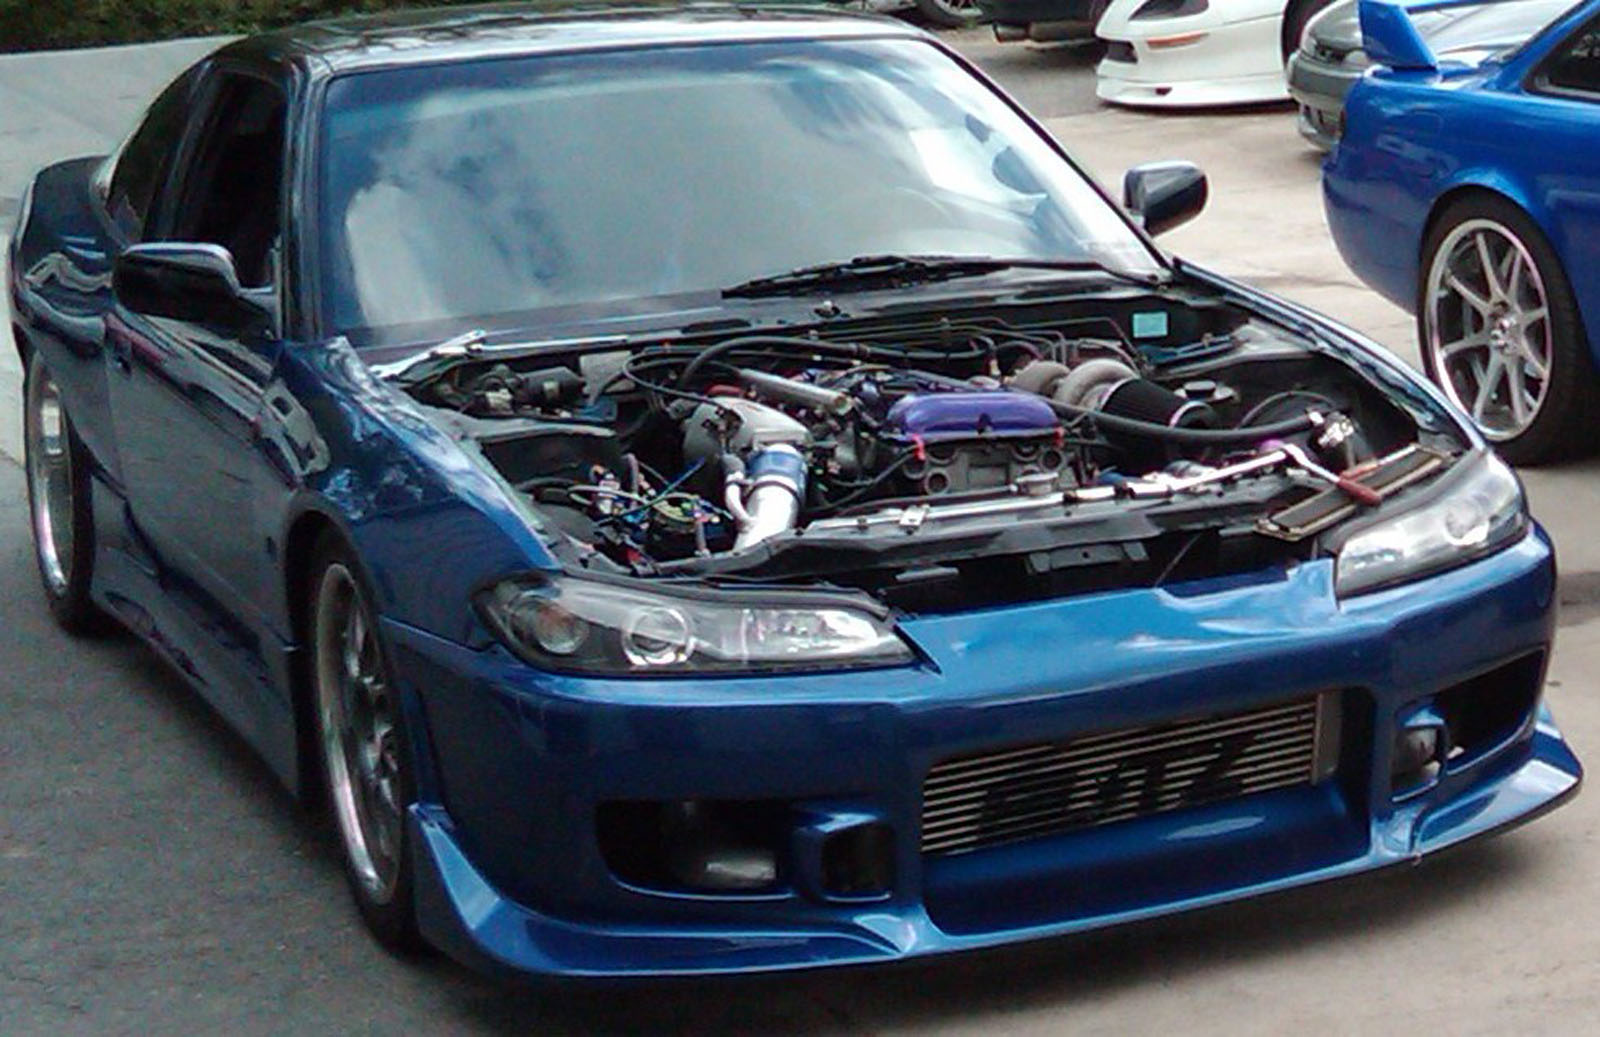 1993 nissan 240sx for sale asheville north carolina for Nissan 240sx motor for sale